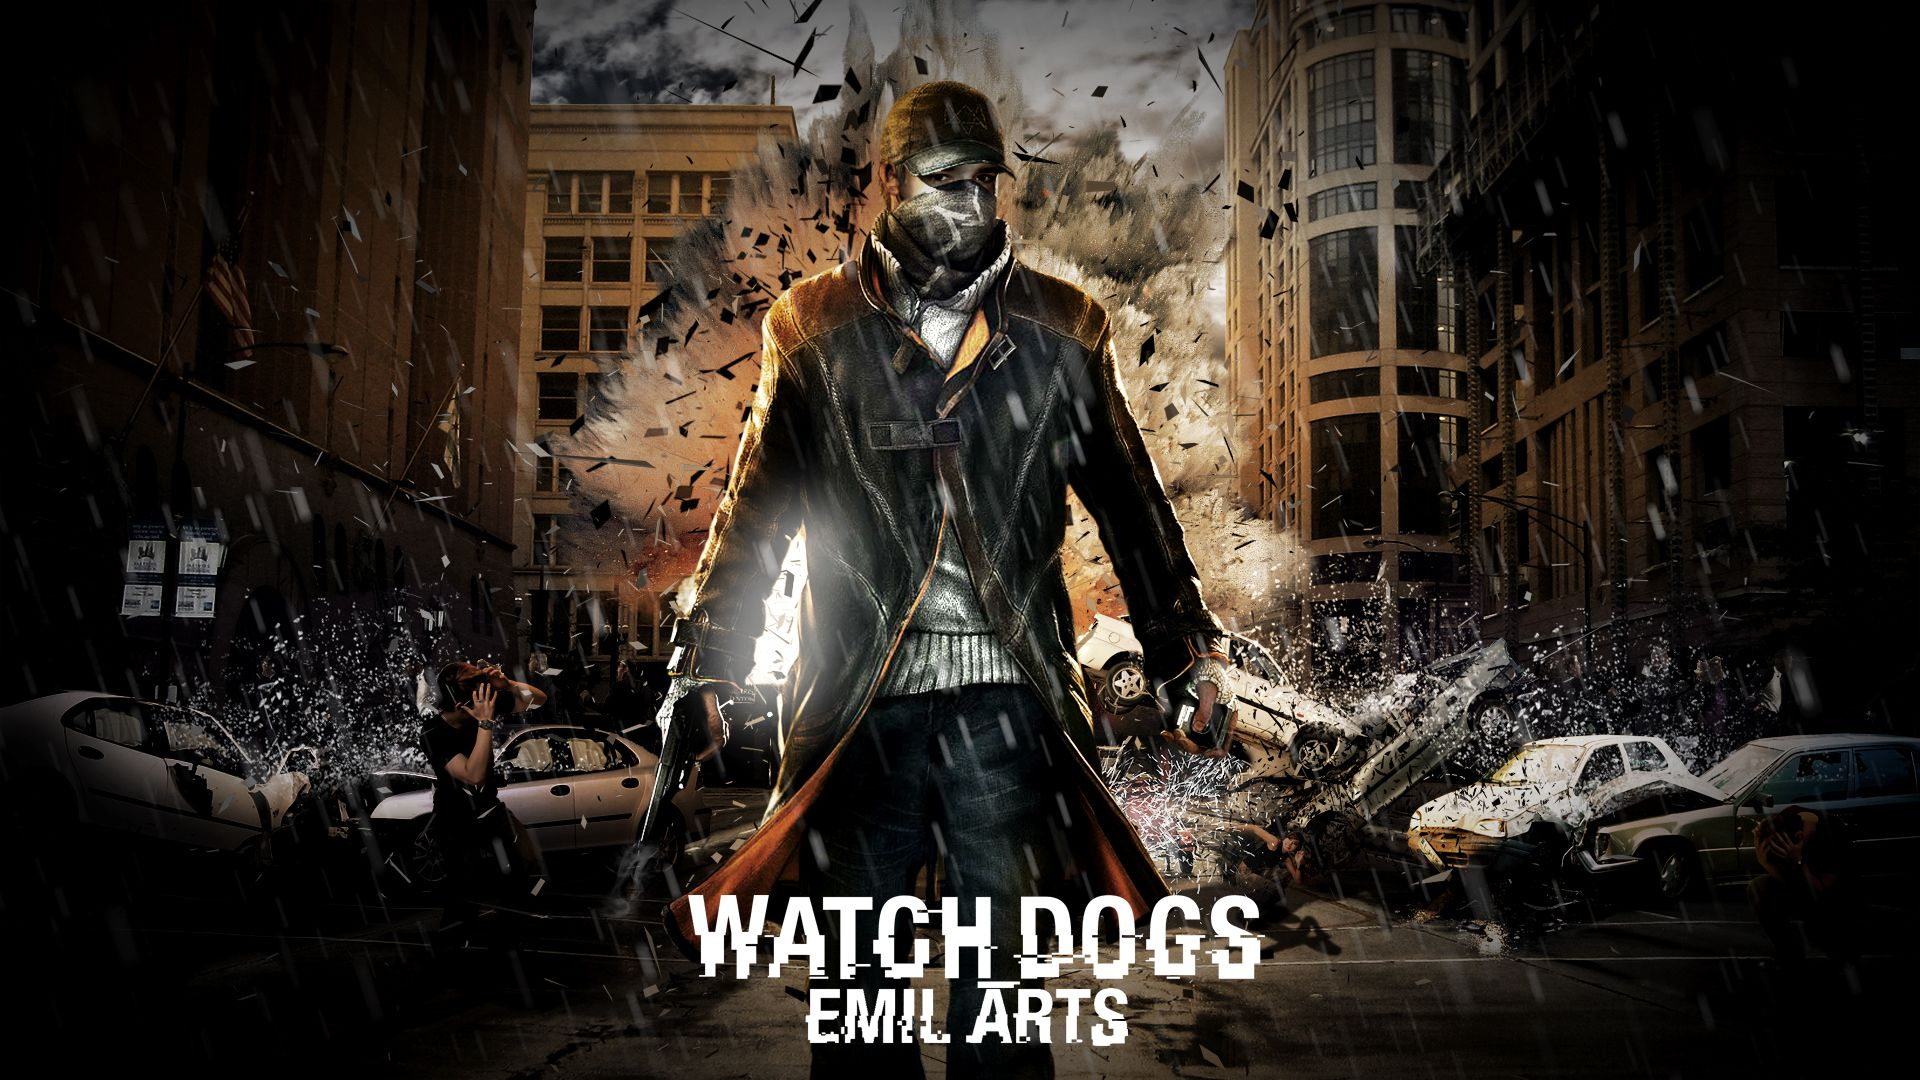 how to download and install watch dogs free download pc link httpallgames4 mewatch dogs 2014 game setup direct link for windows it is an open world